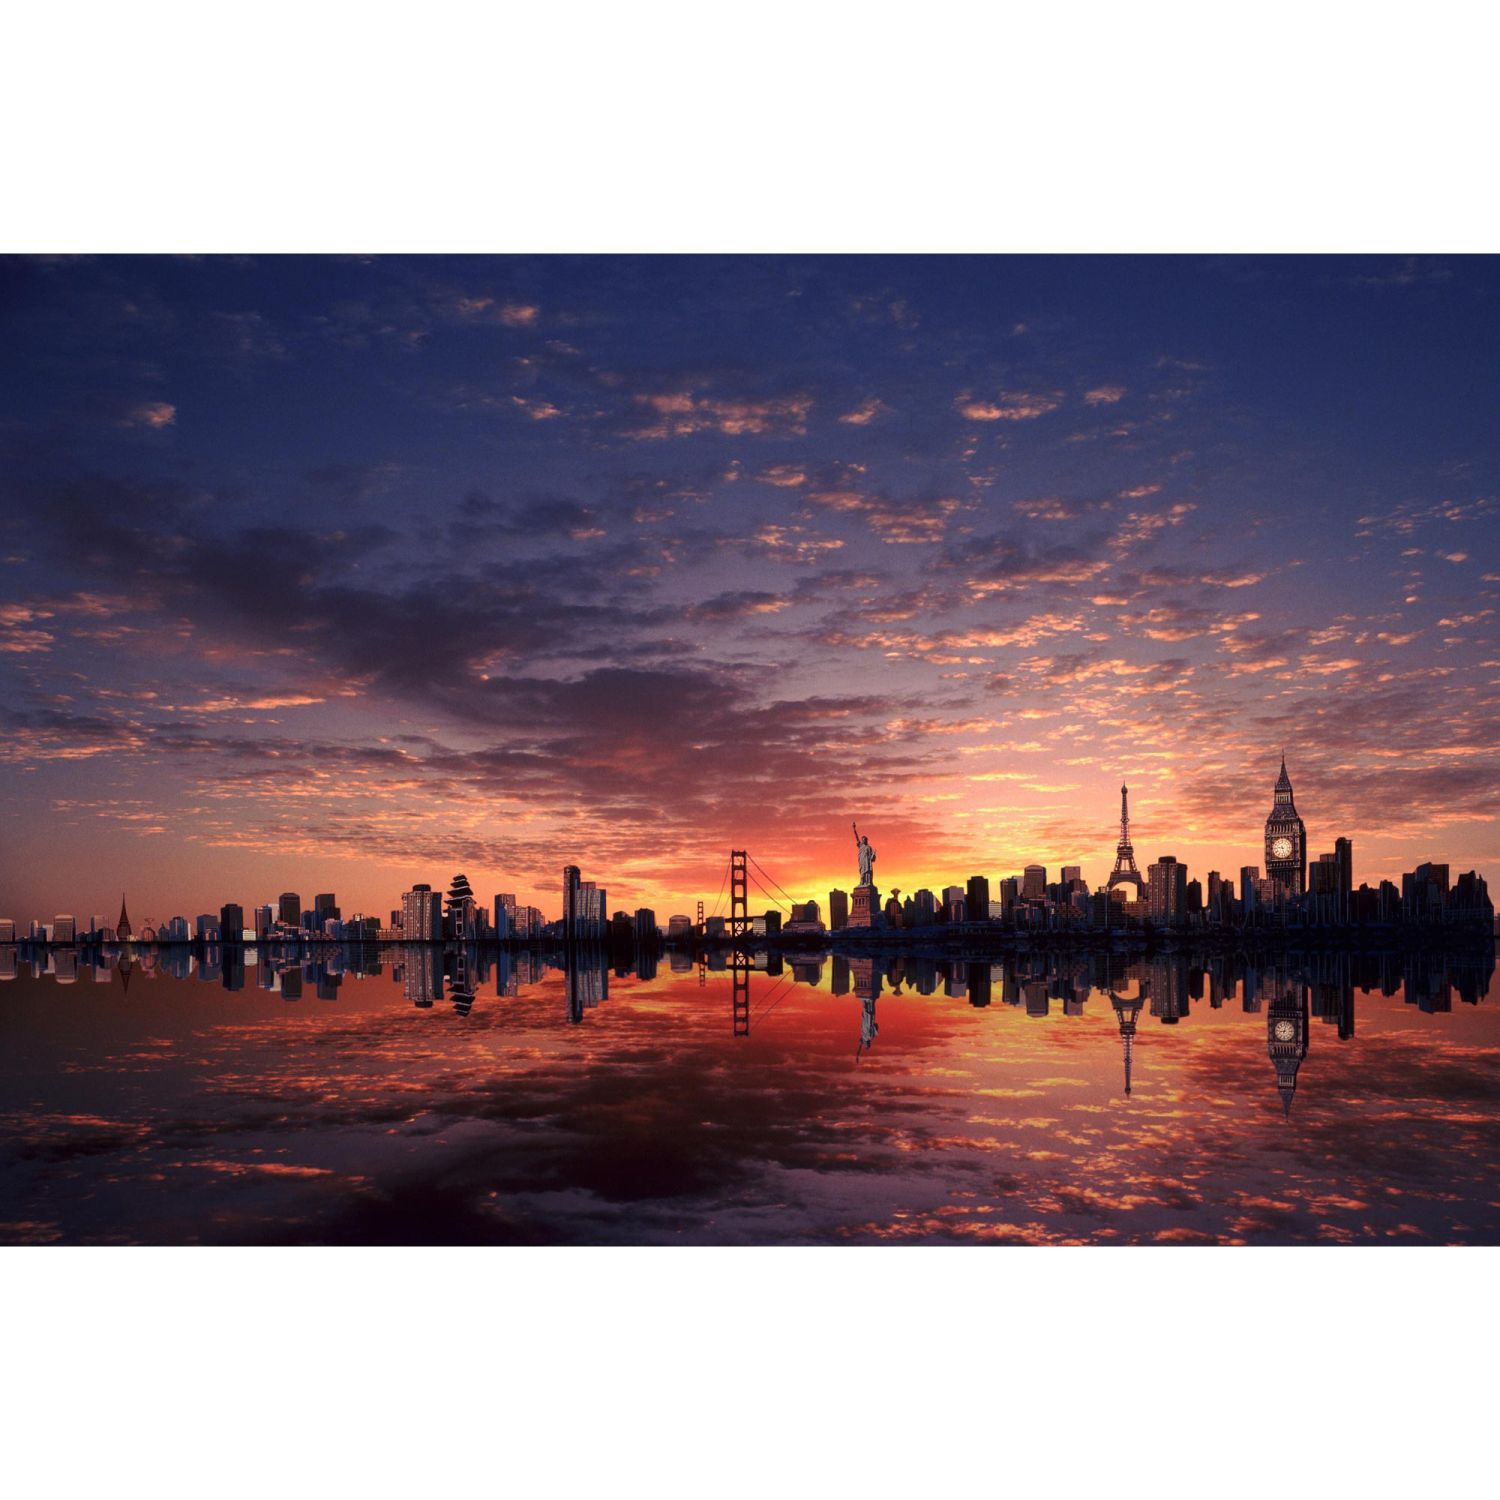 Cities sunrise wallart